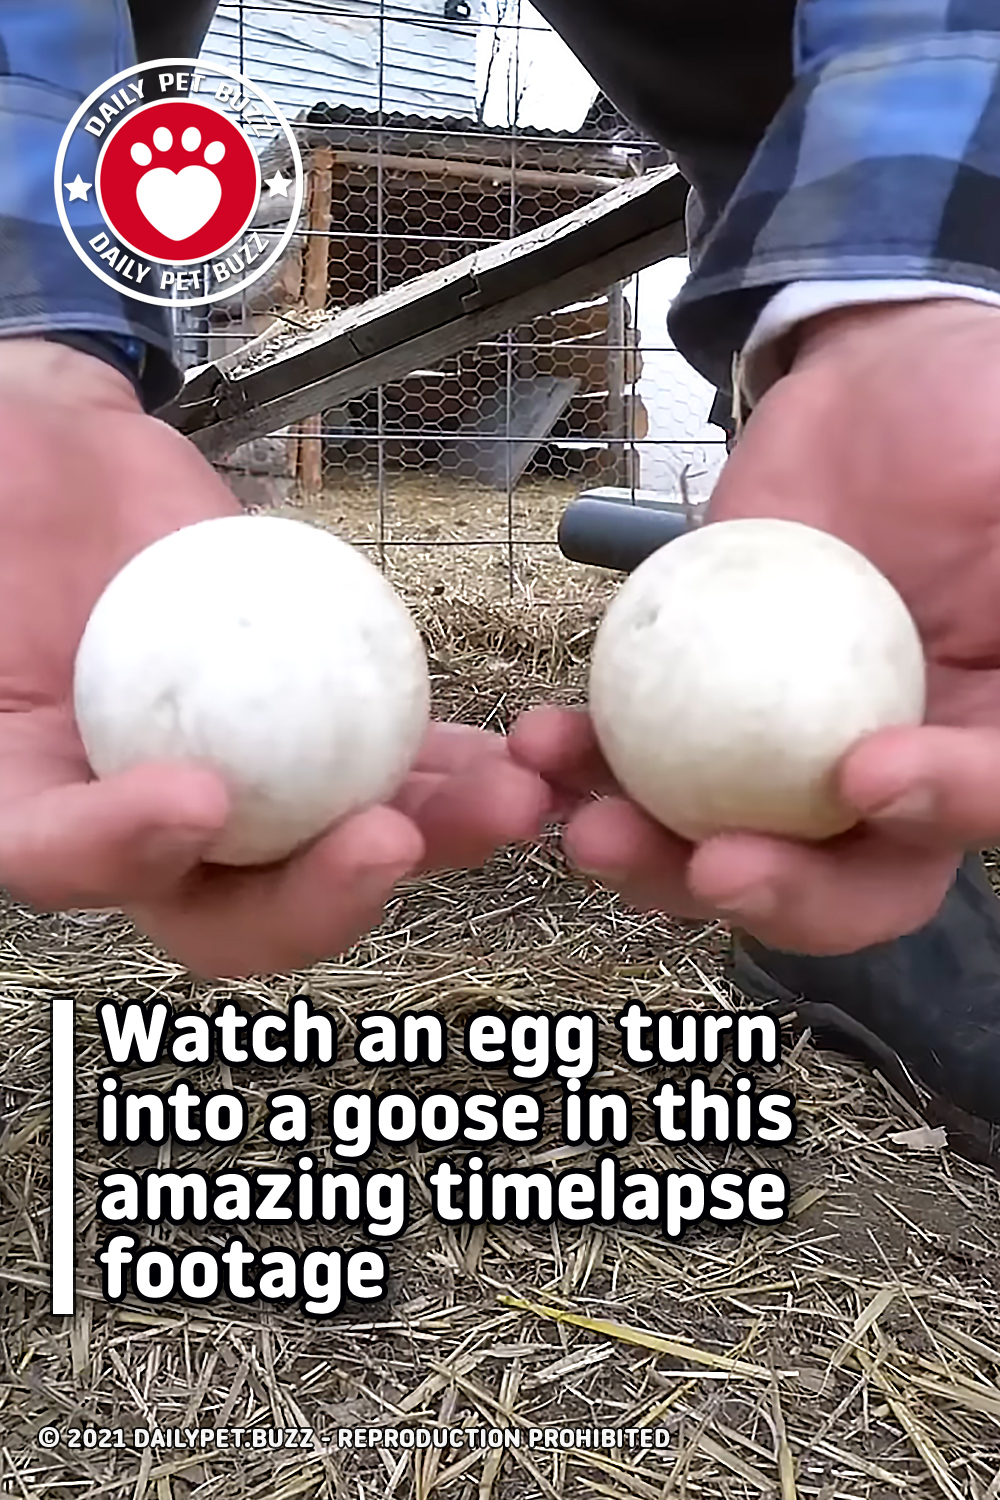 Watch an egg turn into a goose in this amazing timelapse footage